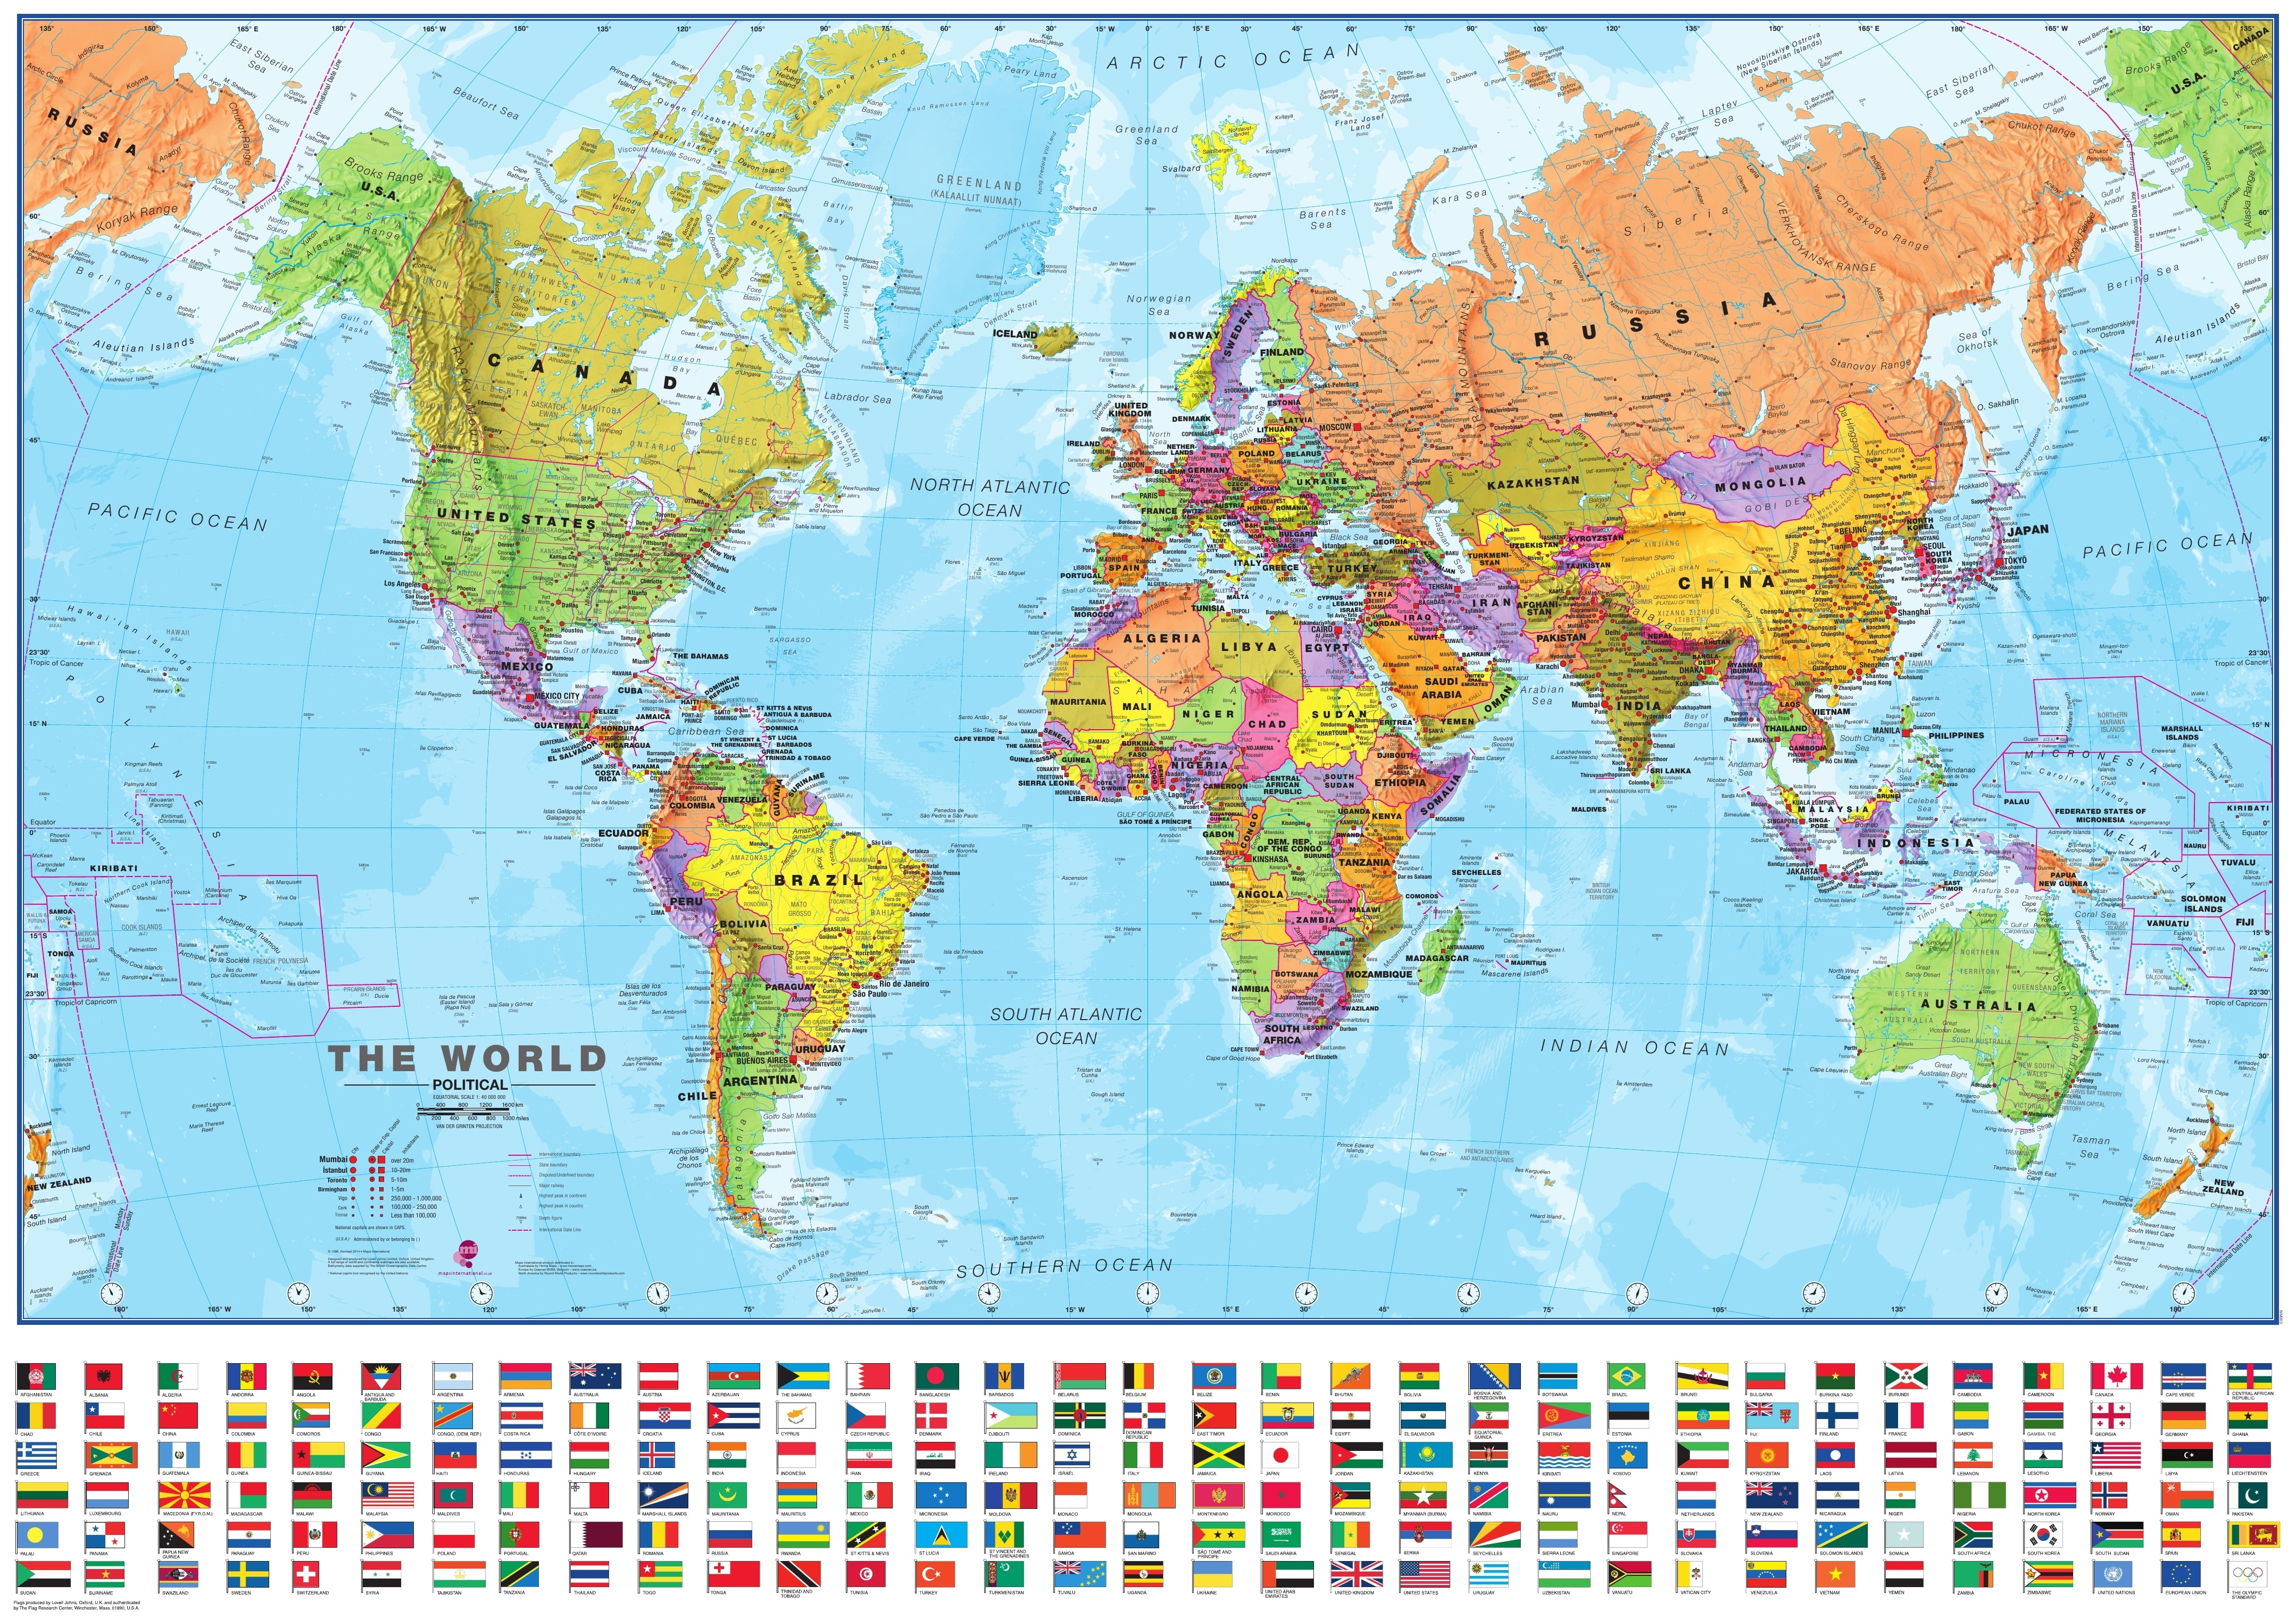 Political World Map With Flags Mio Political World Maps - Wolrd maps